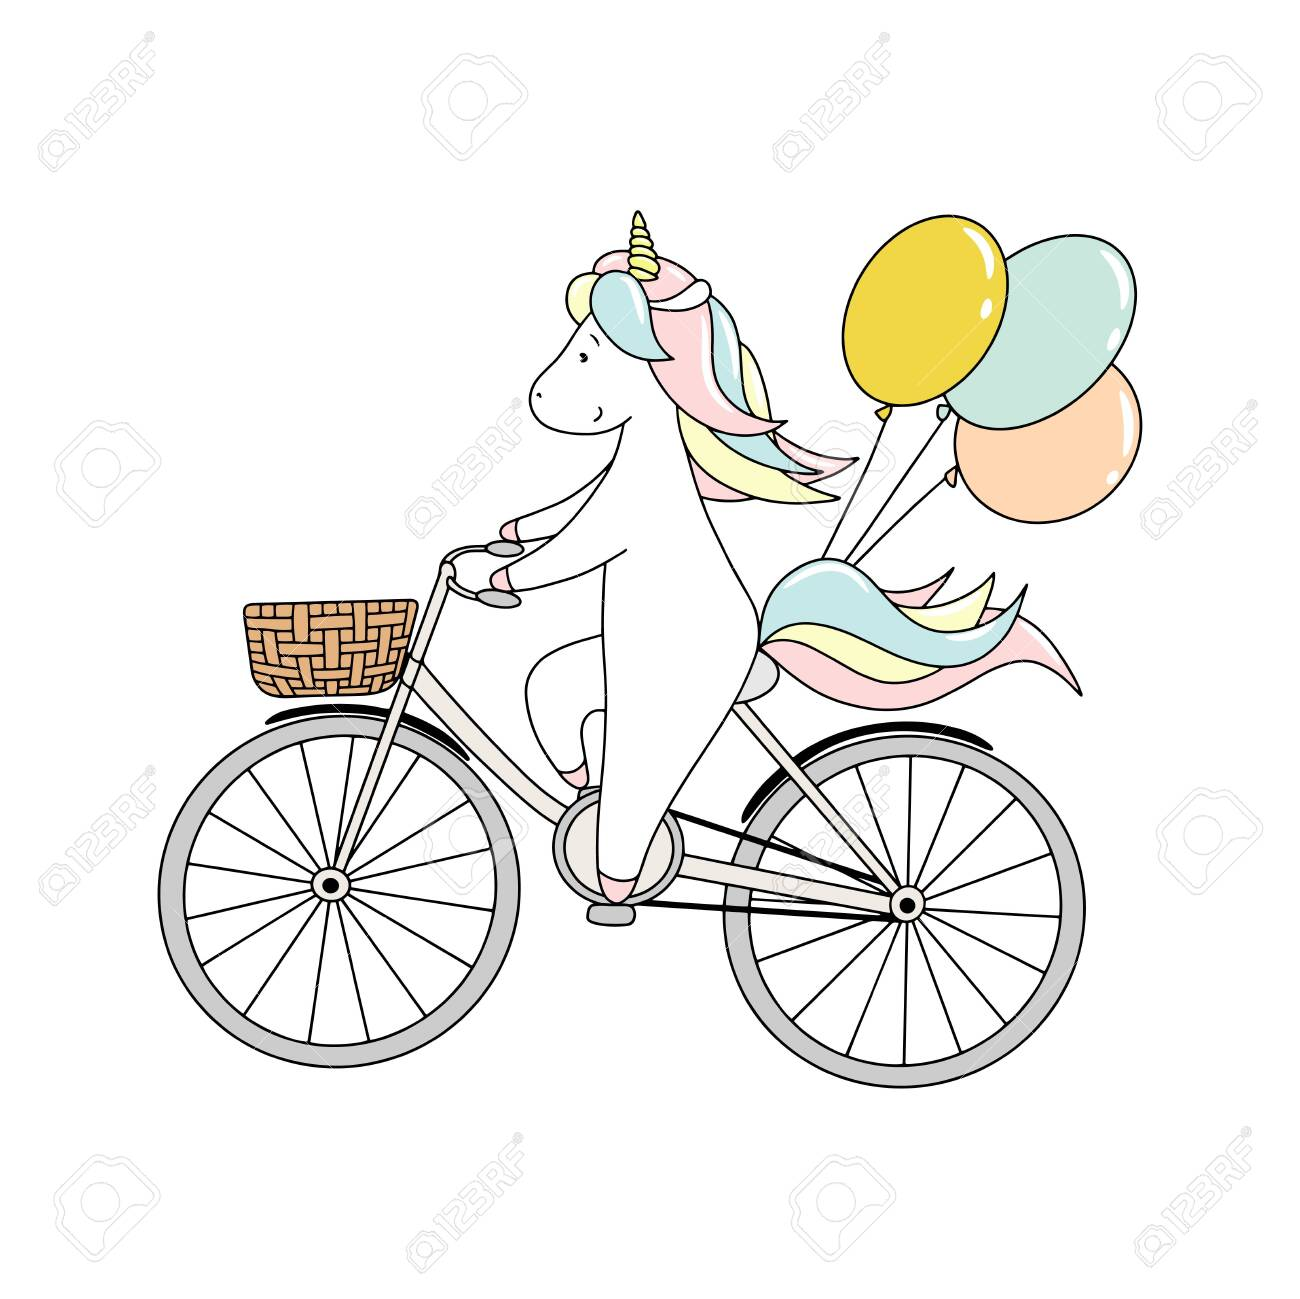 Cute little unicorn is riding a bicycle with balloons. Hand drawn vector illustration - 128663171